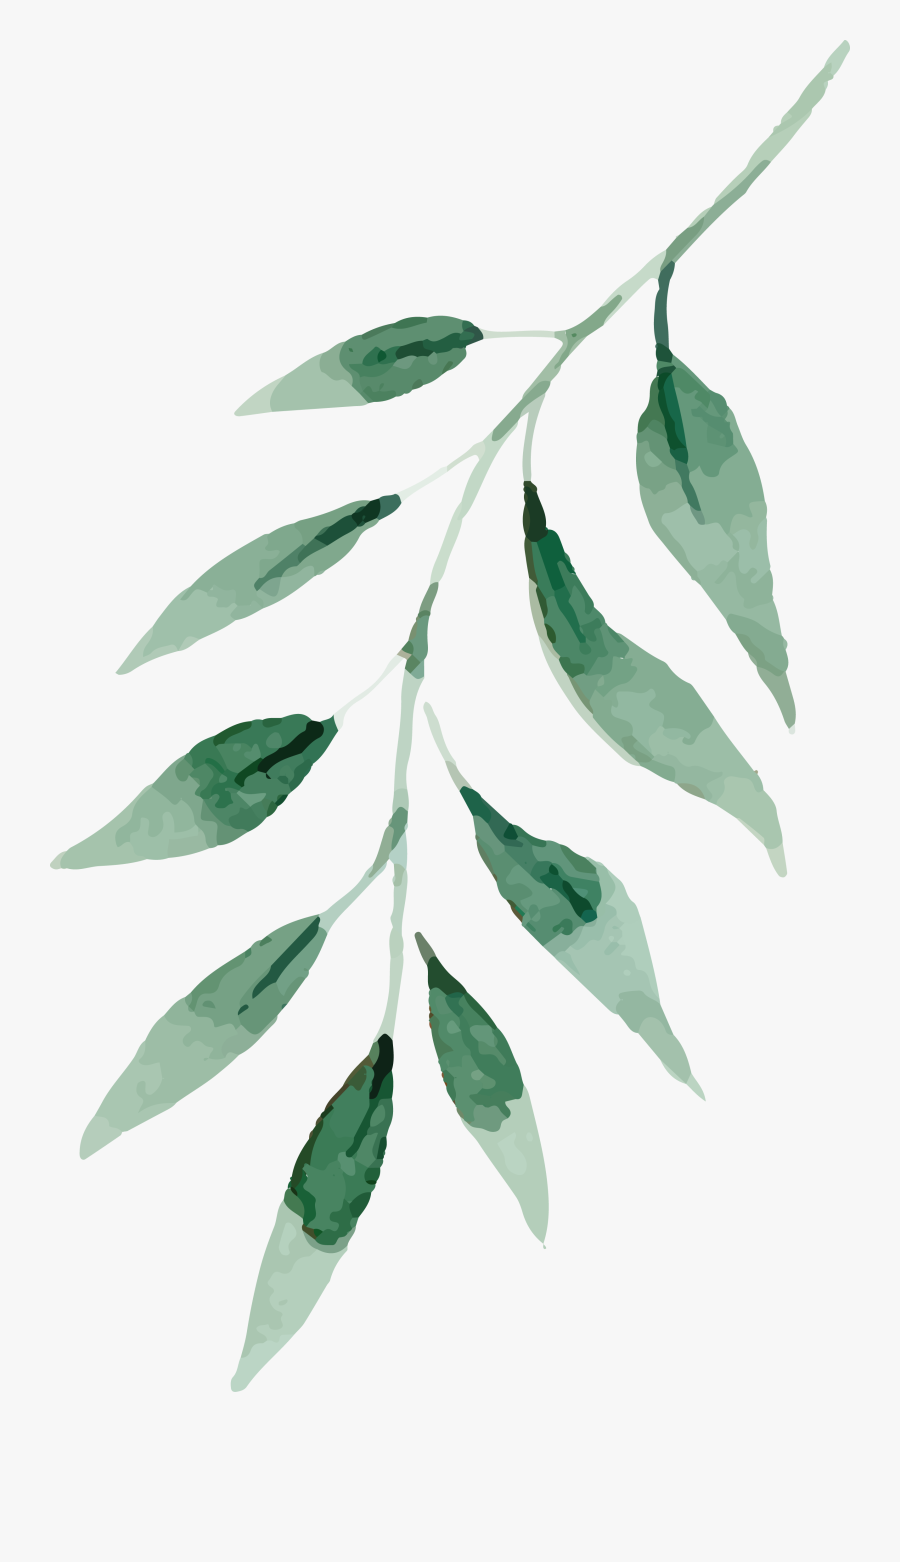 Watercolor Painting Drawing Leaf - Watercolor Green Leaves Png, Transparent Clipart